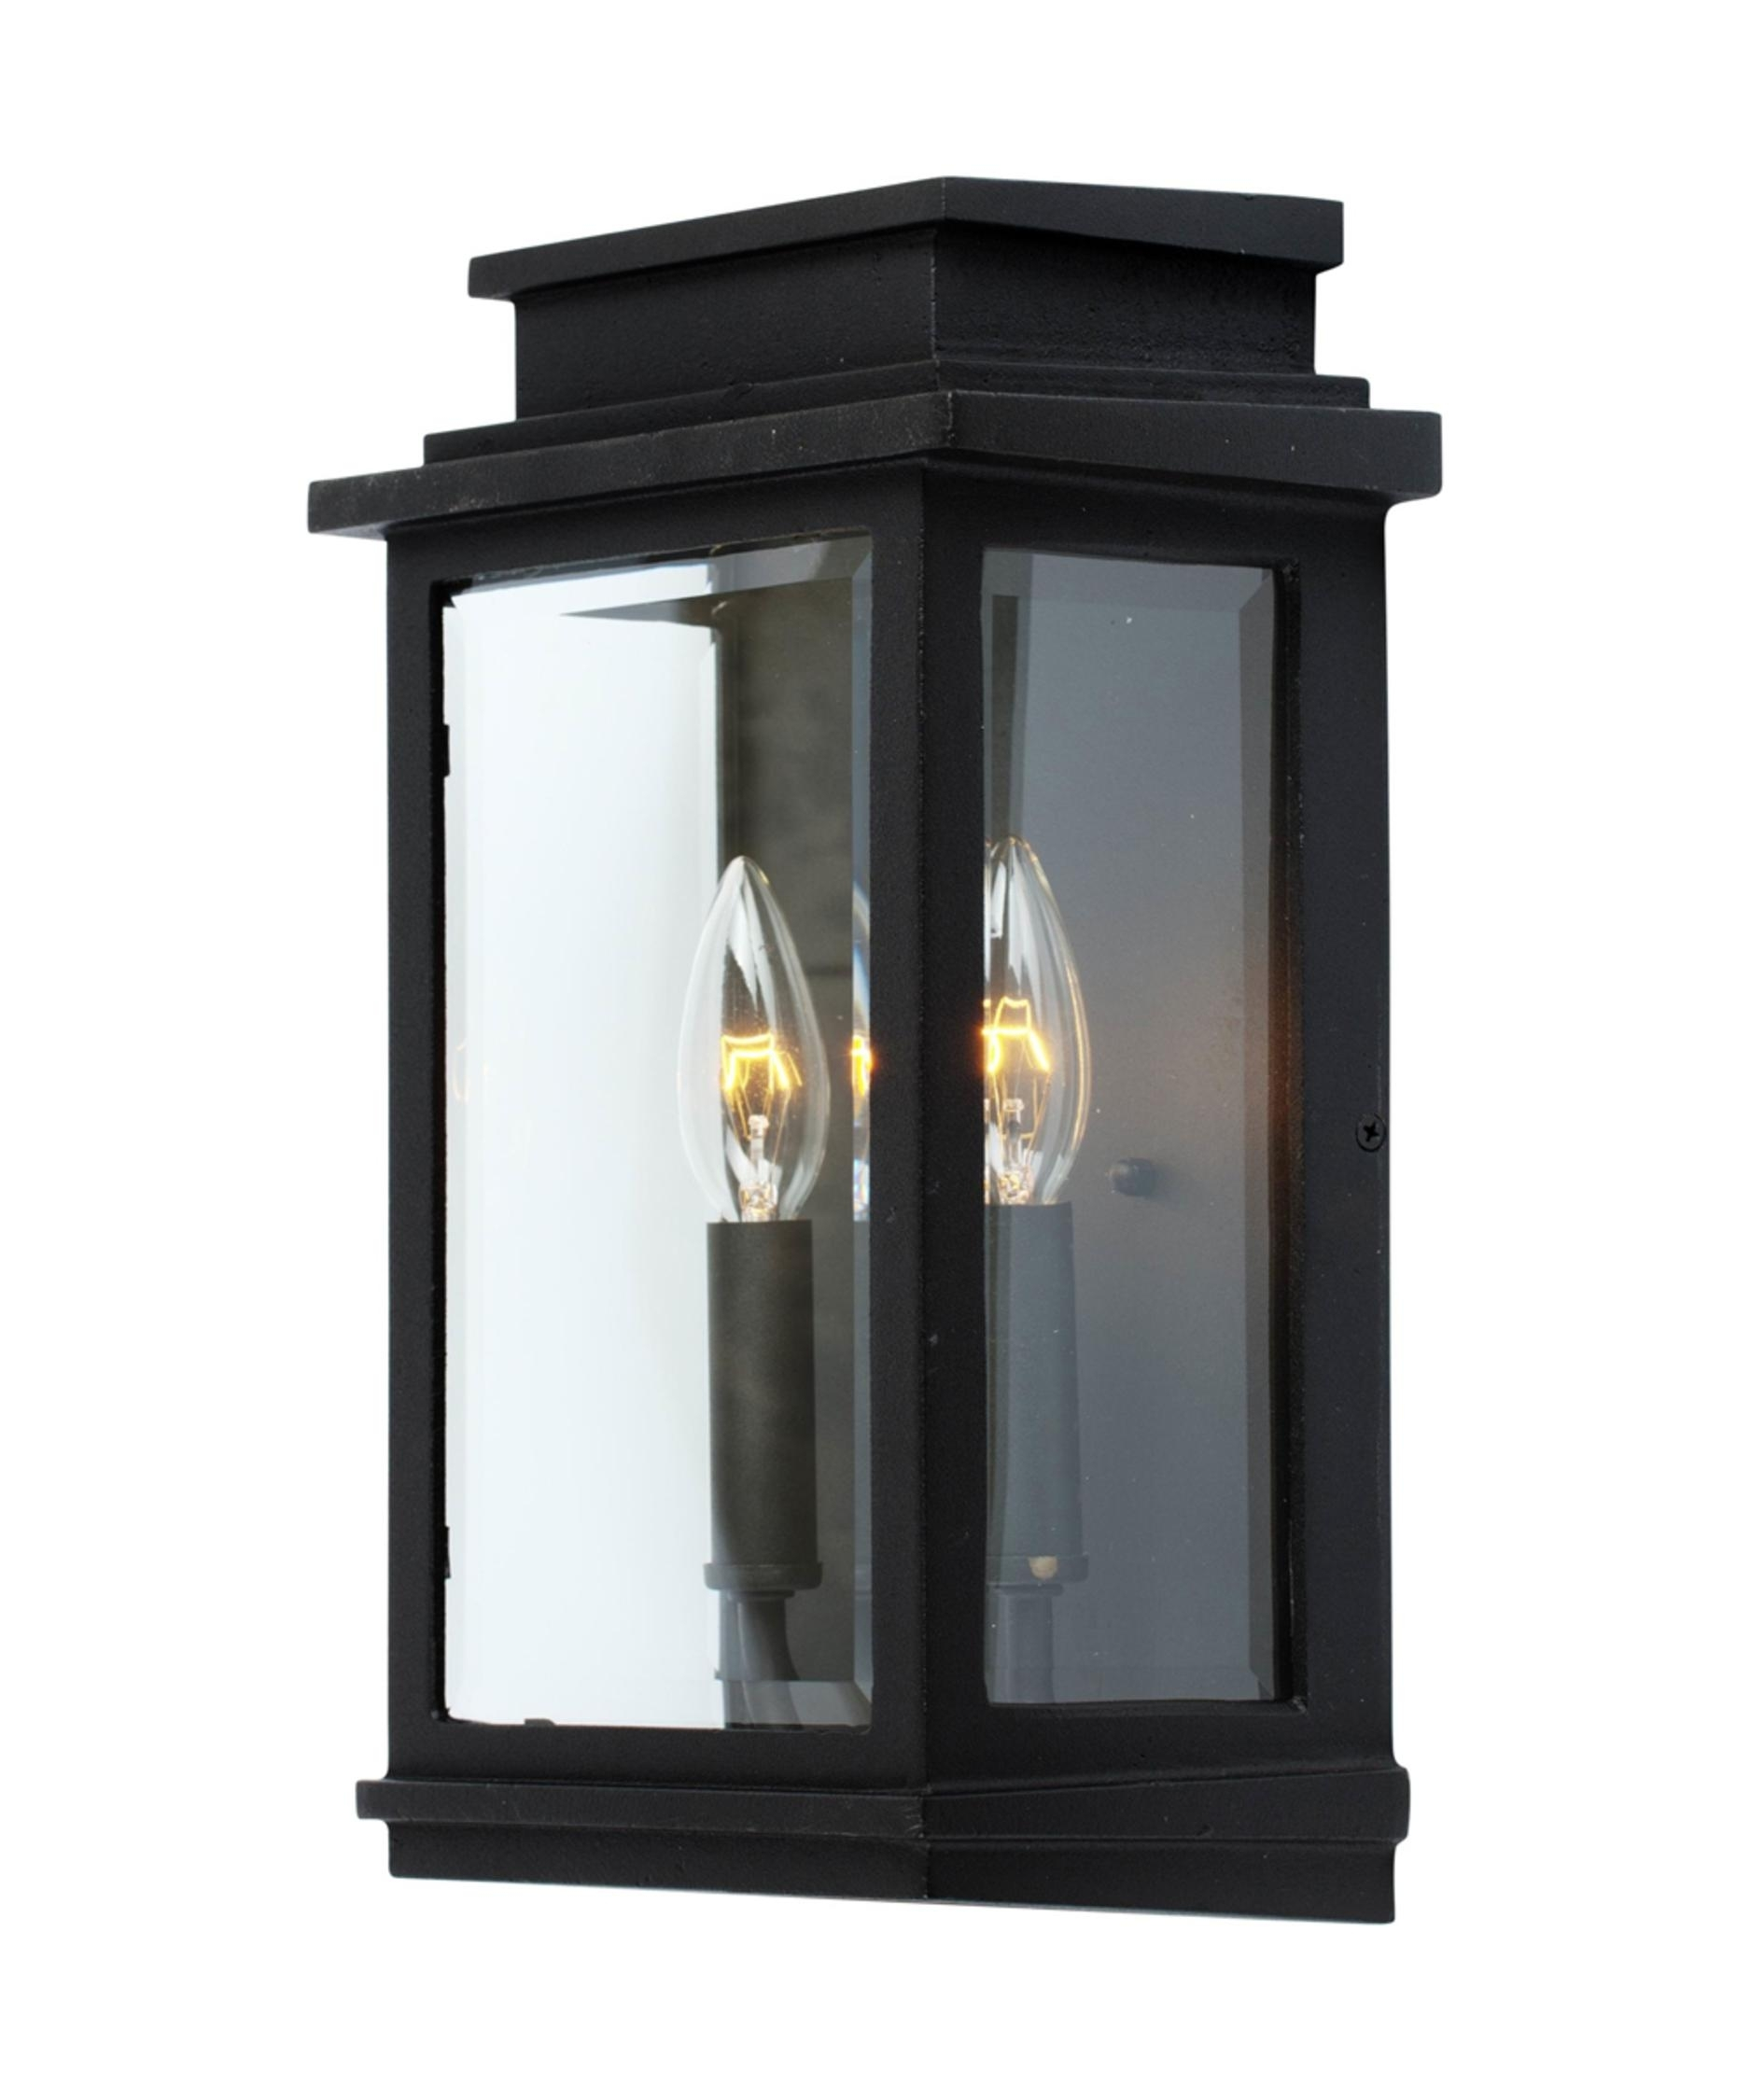 Artcraft Ac8391 Fremont 9 Inch Wide 2 Light Outdoor Wall Light Inside Outdoor Wall Lights In Black (#2 of 15)